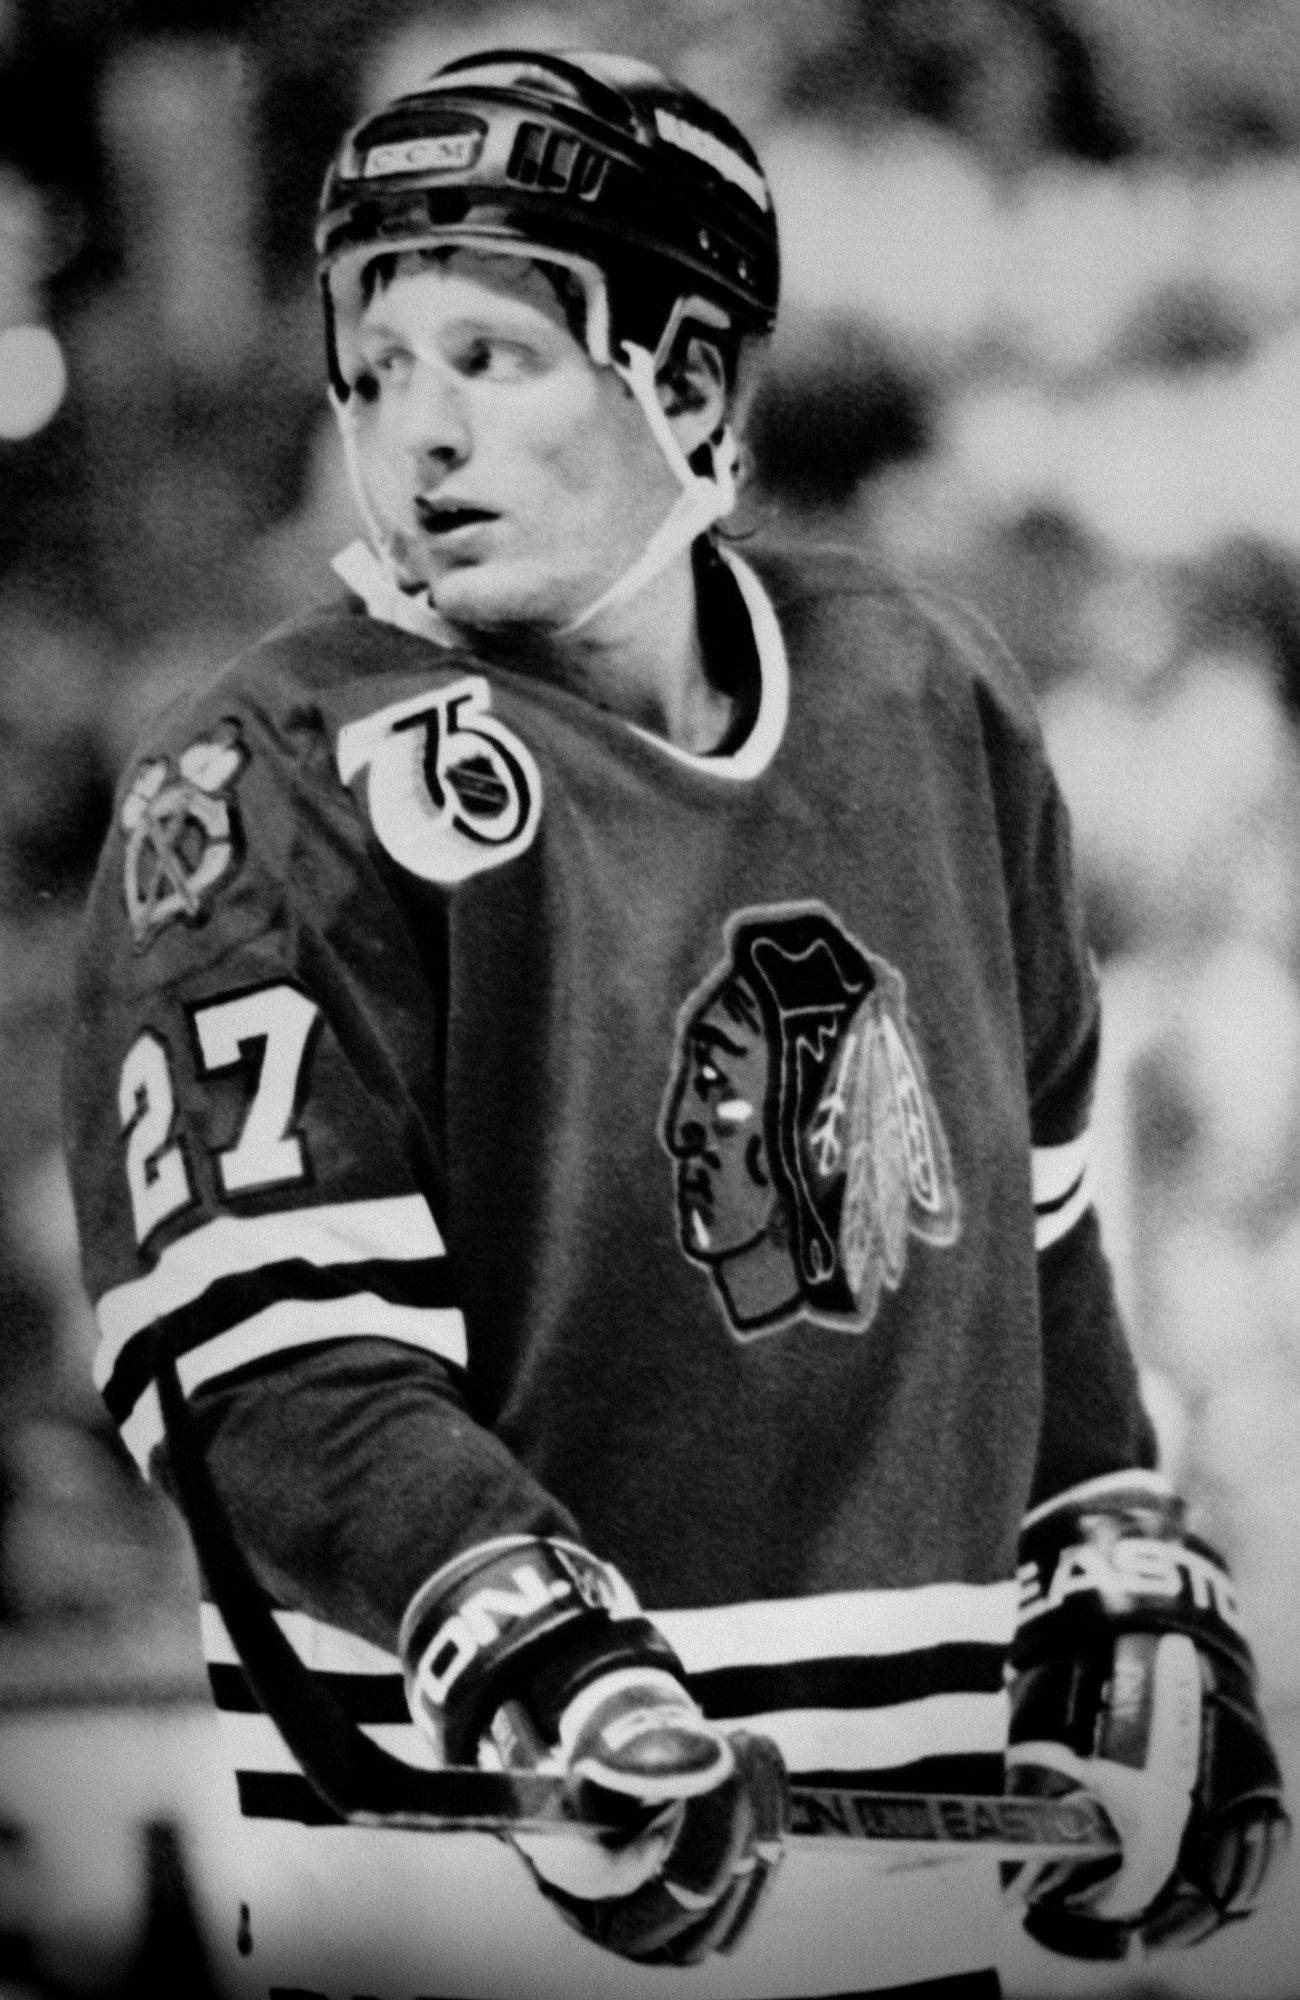 Jeremy Roenick of the Blackhawks was only 22 years old when he helped the Hawks reach the 1992 Stanley Cup Finals.